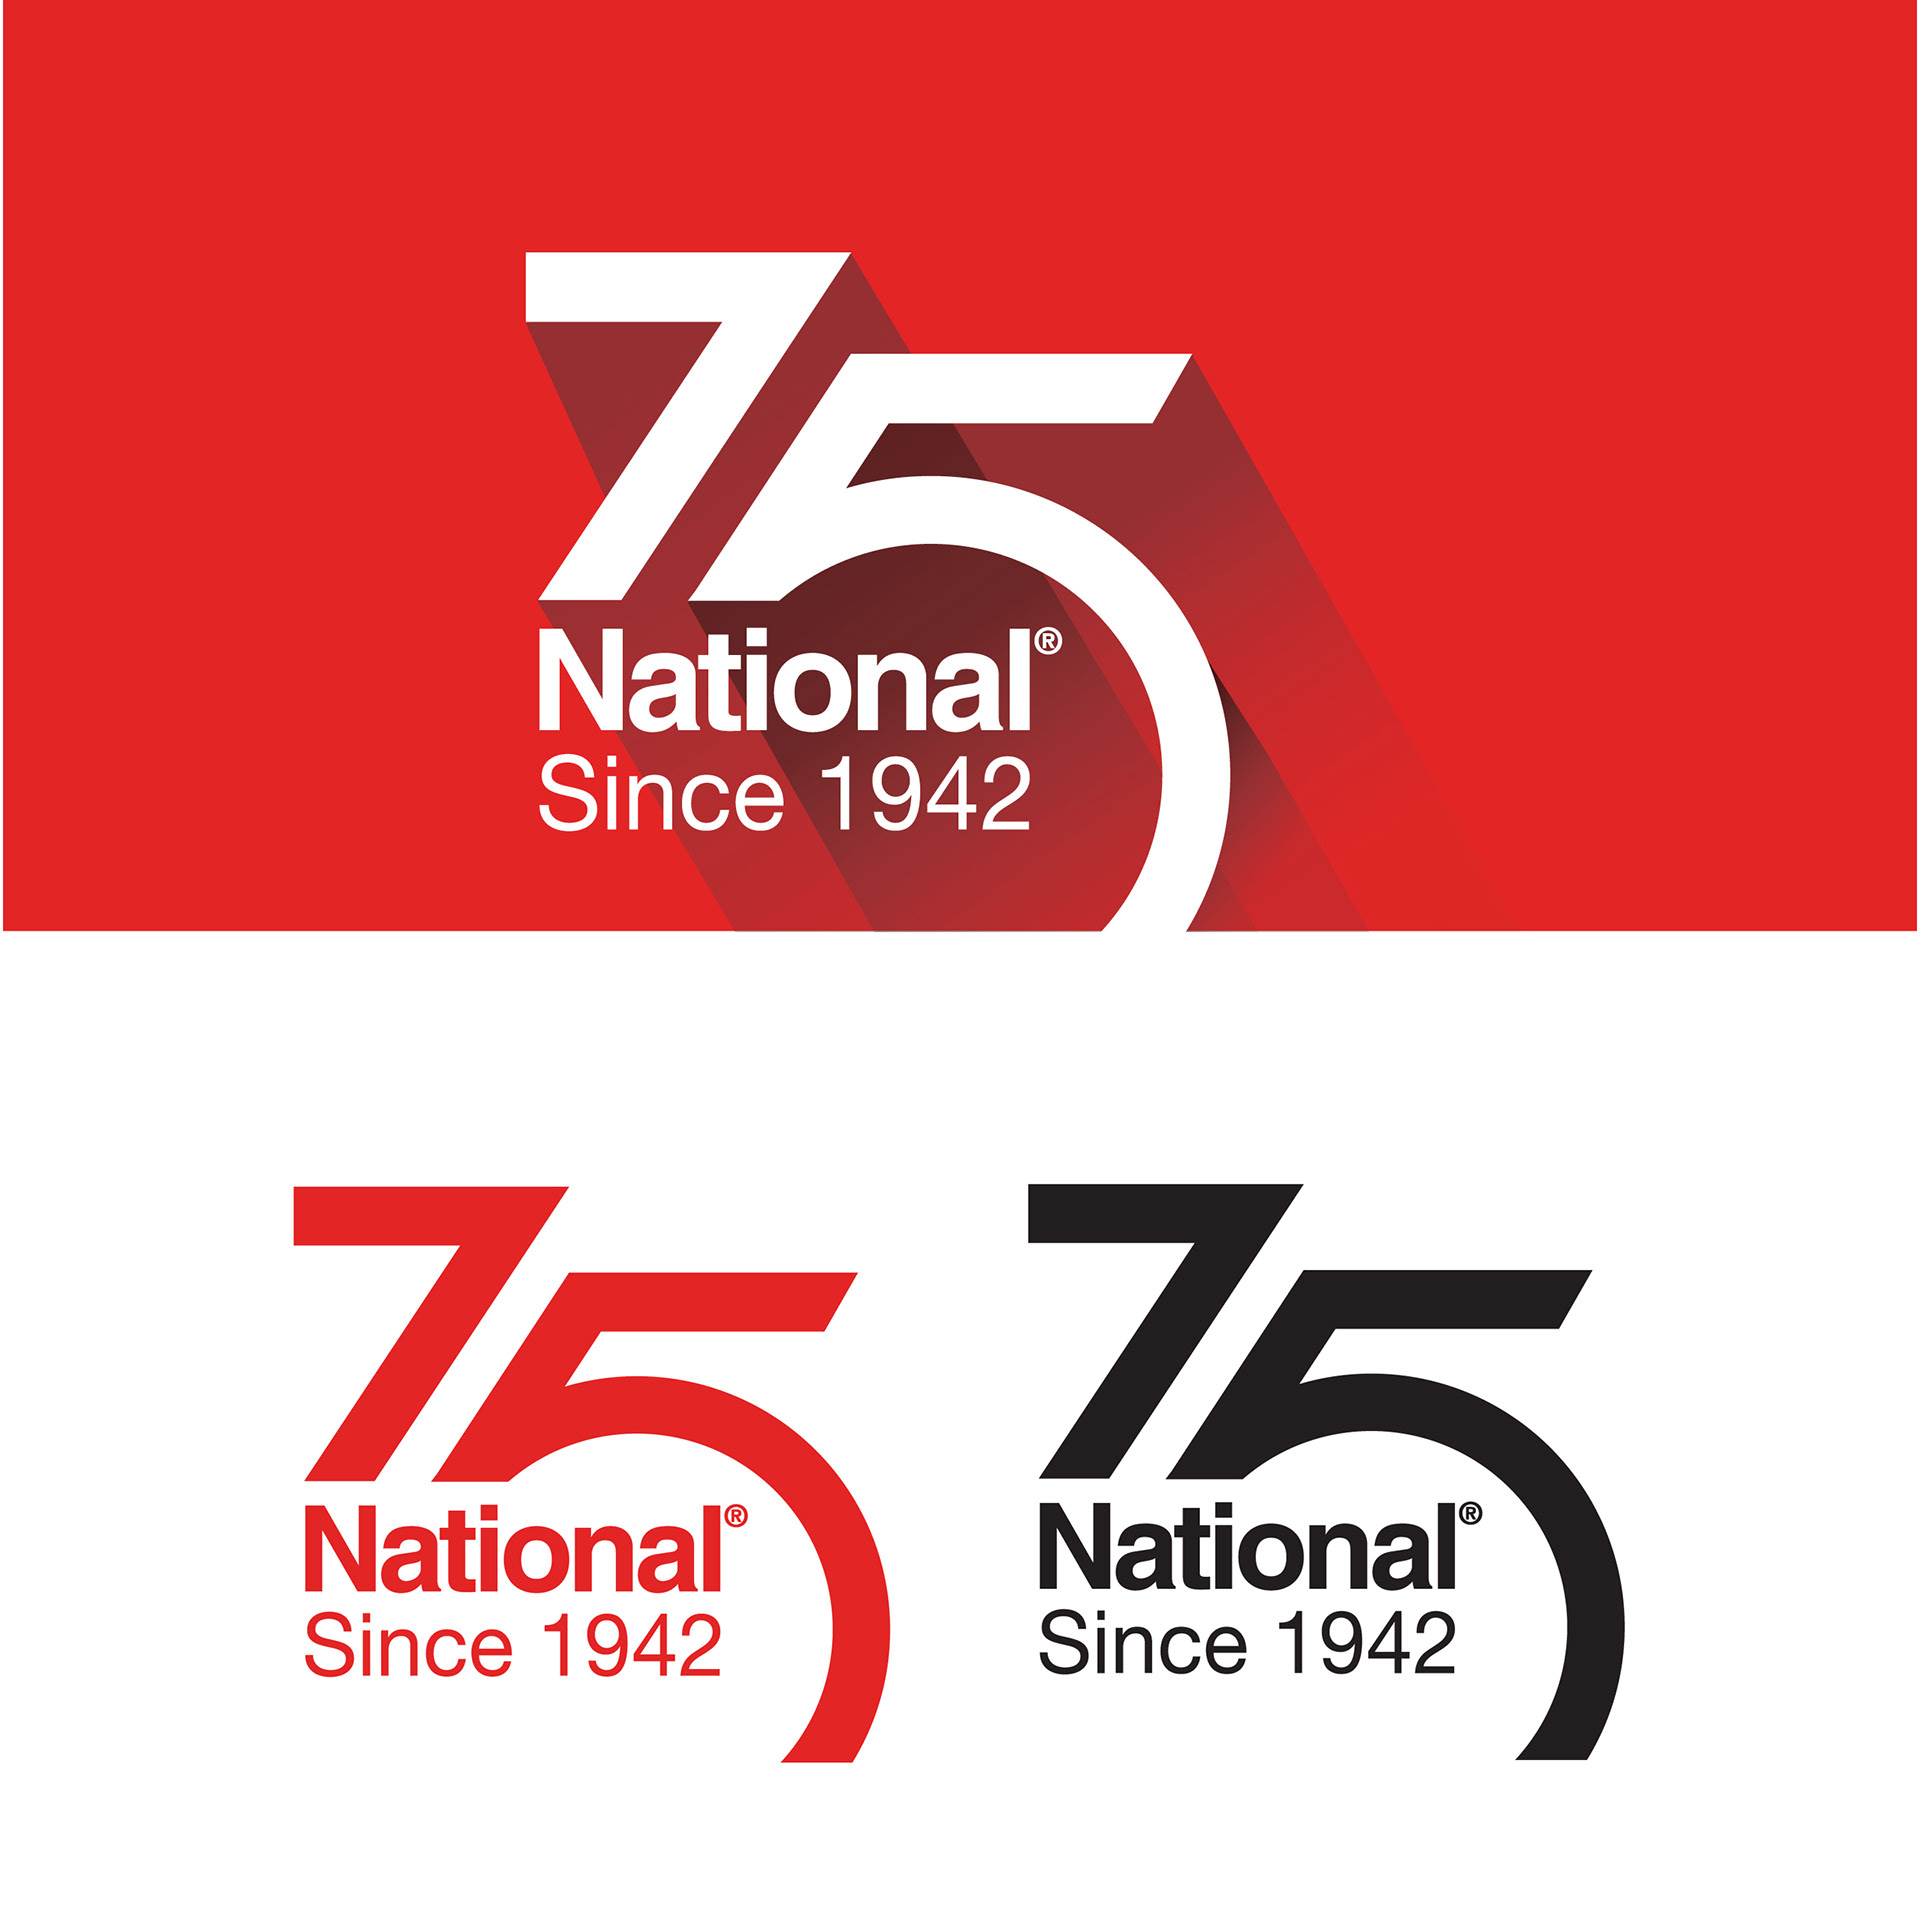 Alexa therese national oil seals 75th anniversary logo i developed a logo for national oil seals 75th anniversary drawing inspiration from the brands current logo which is reminiscent of an oil seal altavistaventures Image collections